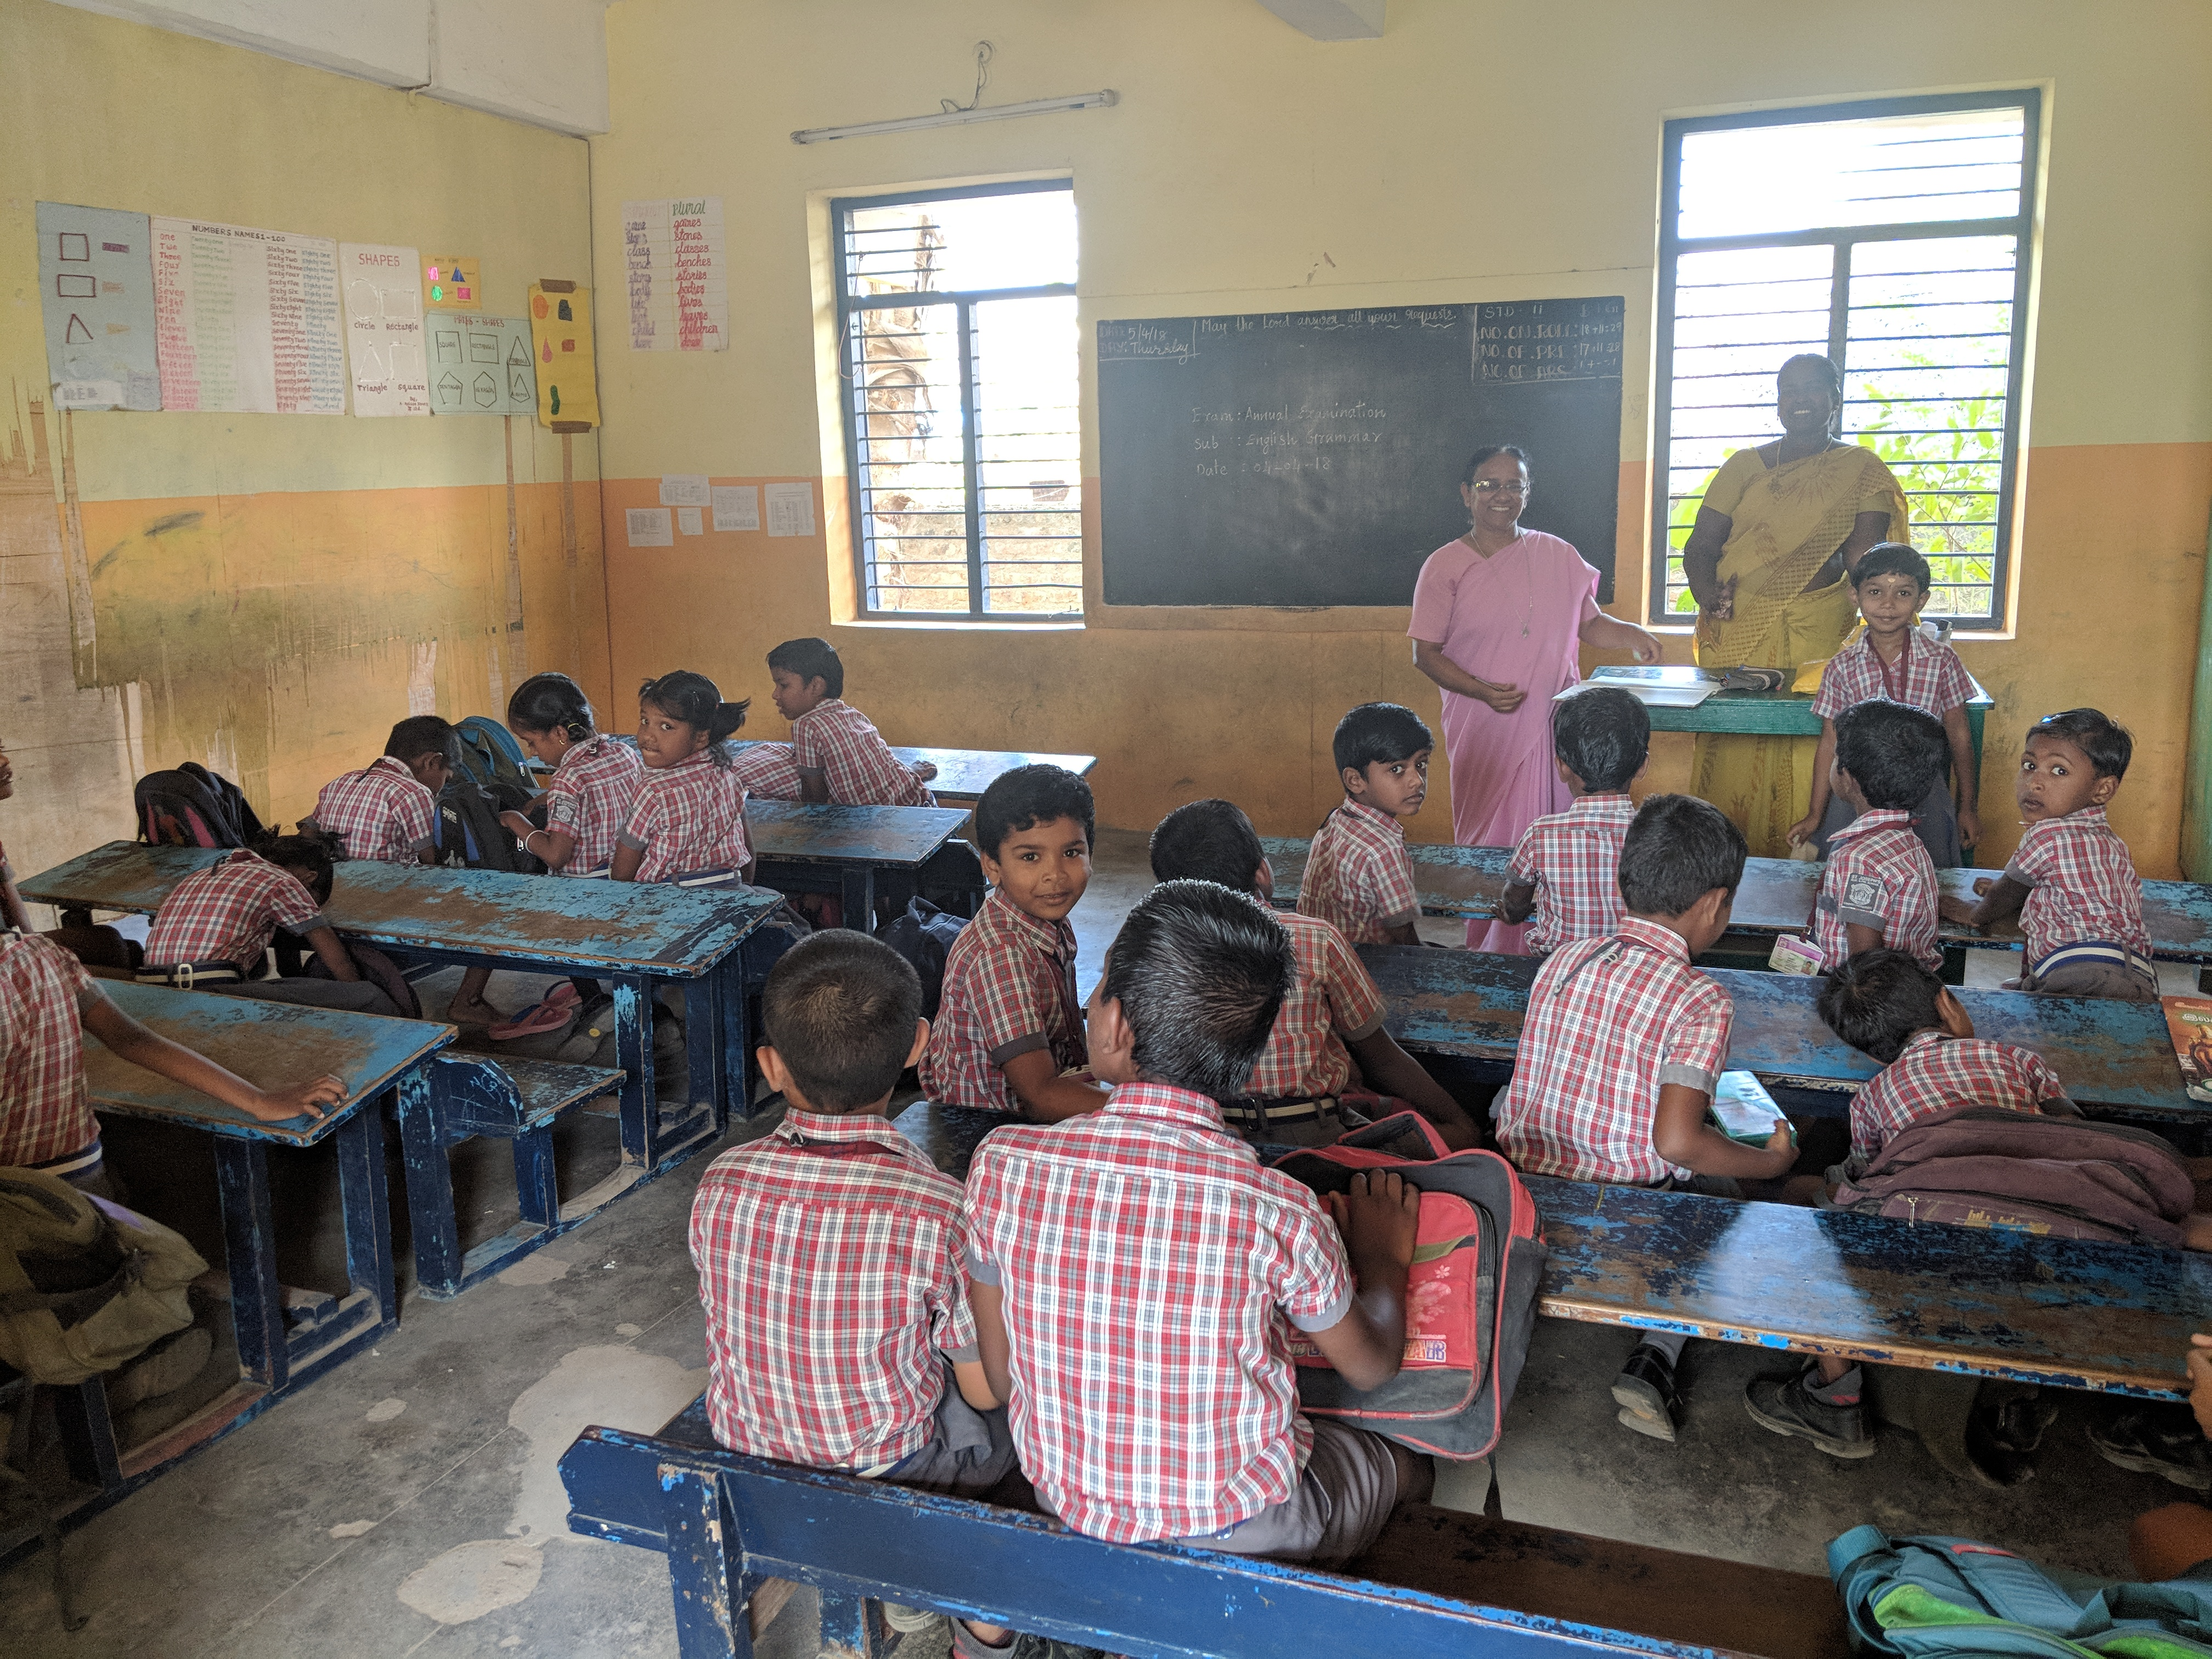 Educational improvement for more than 200 students in Gandhipet (India)